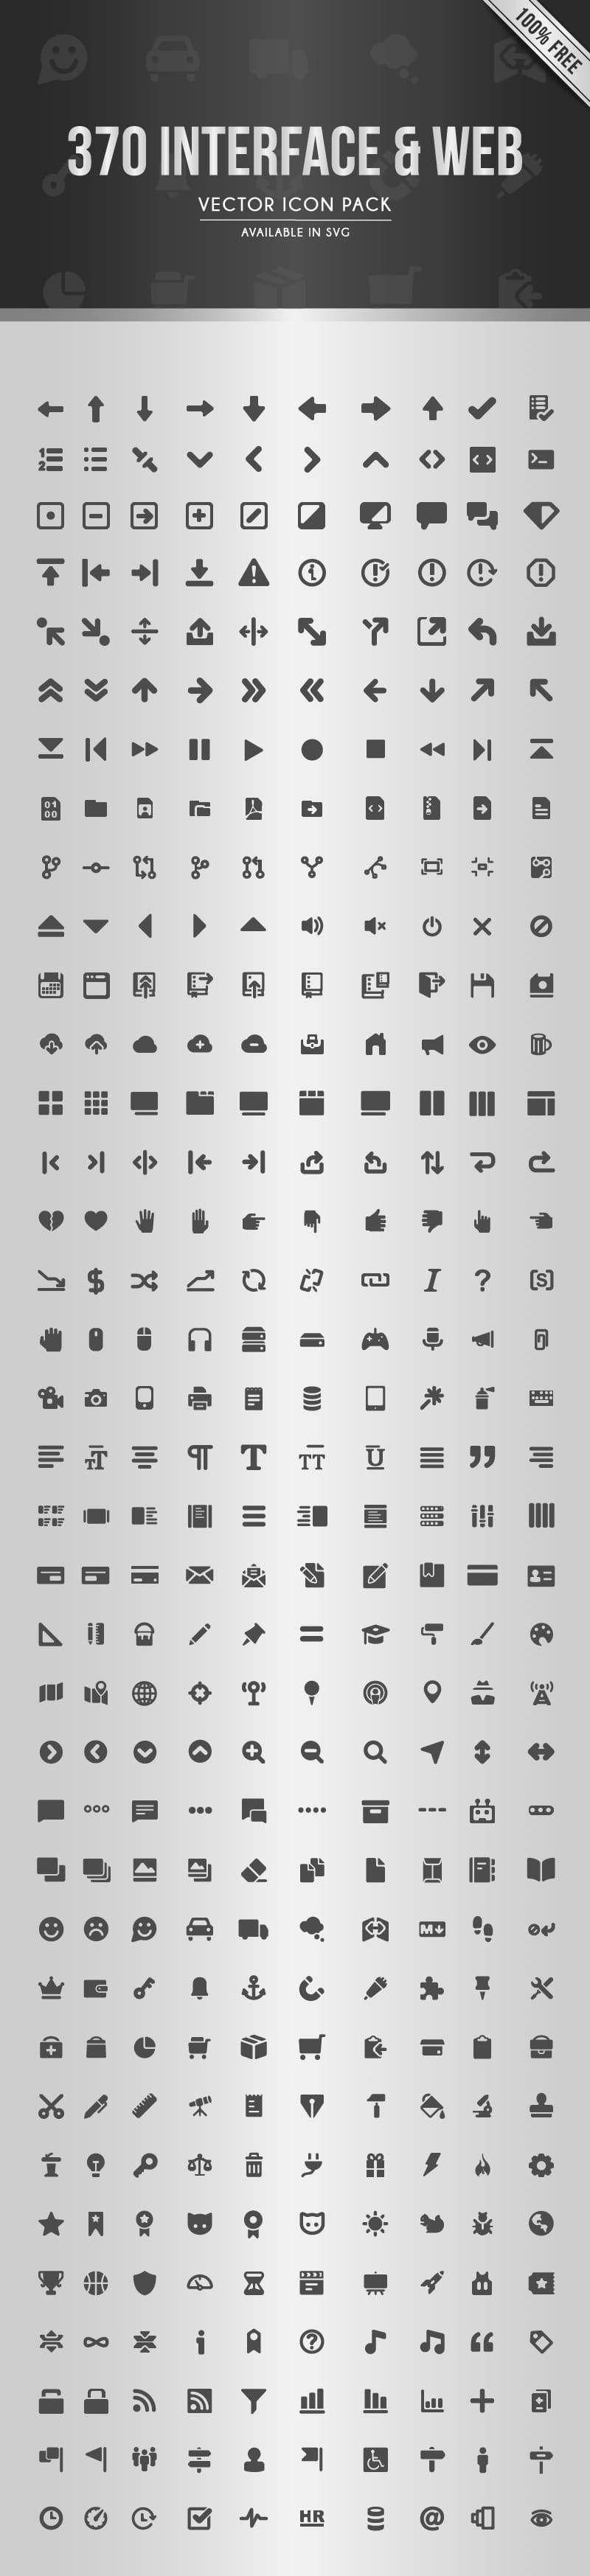 The Web Interface Icon Set